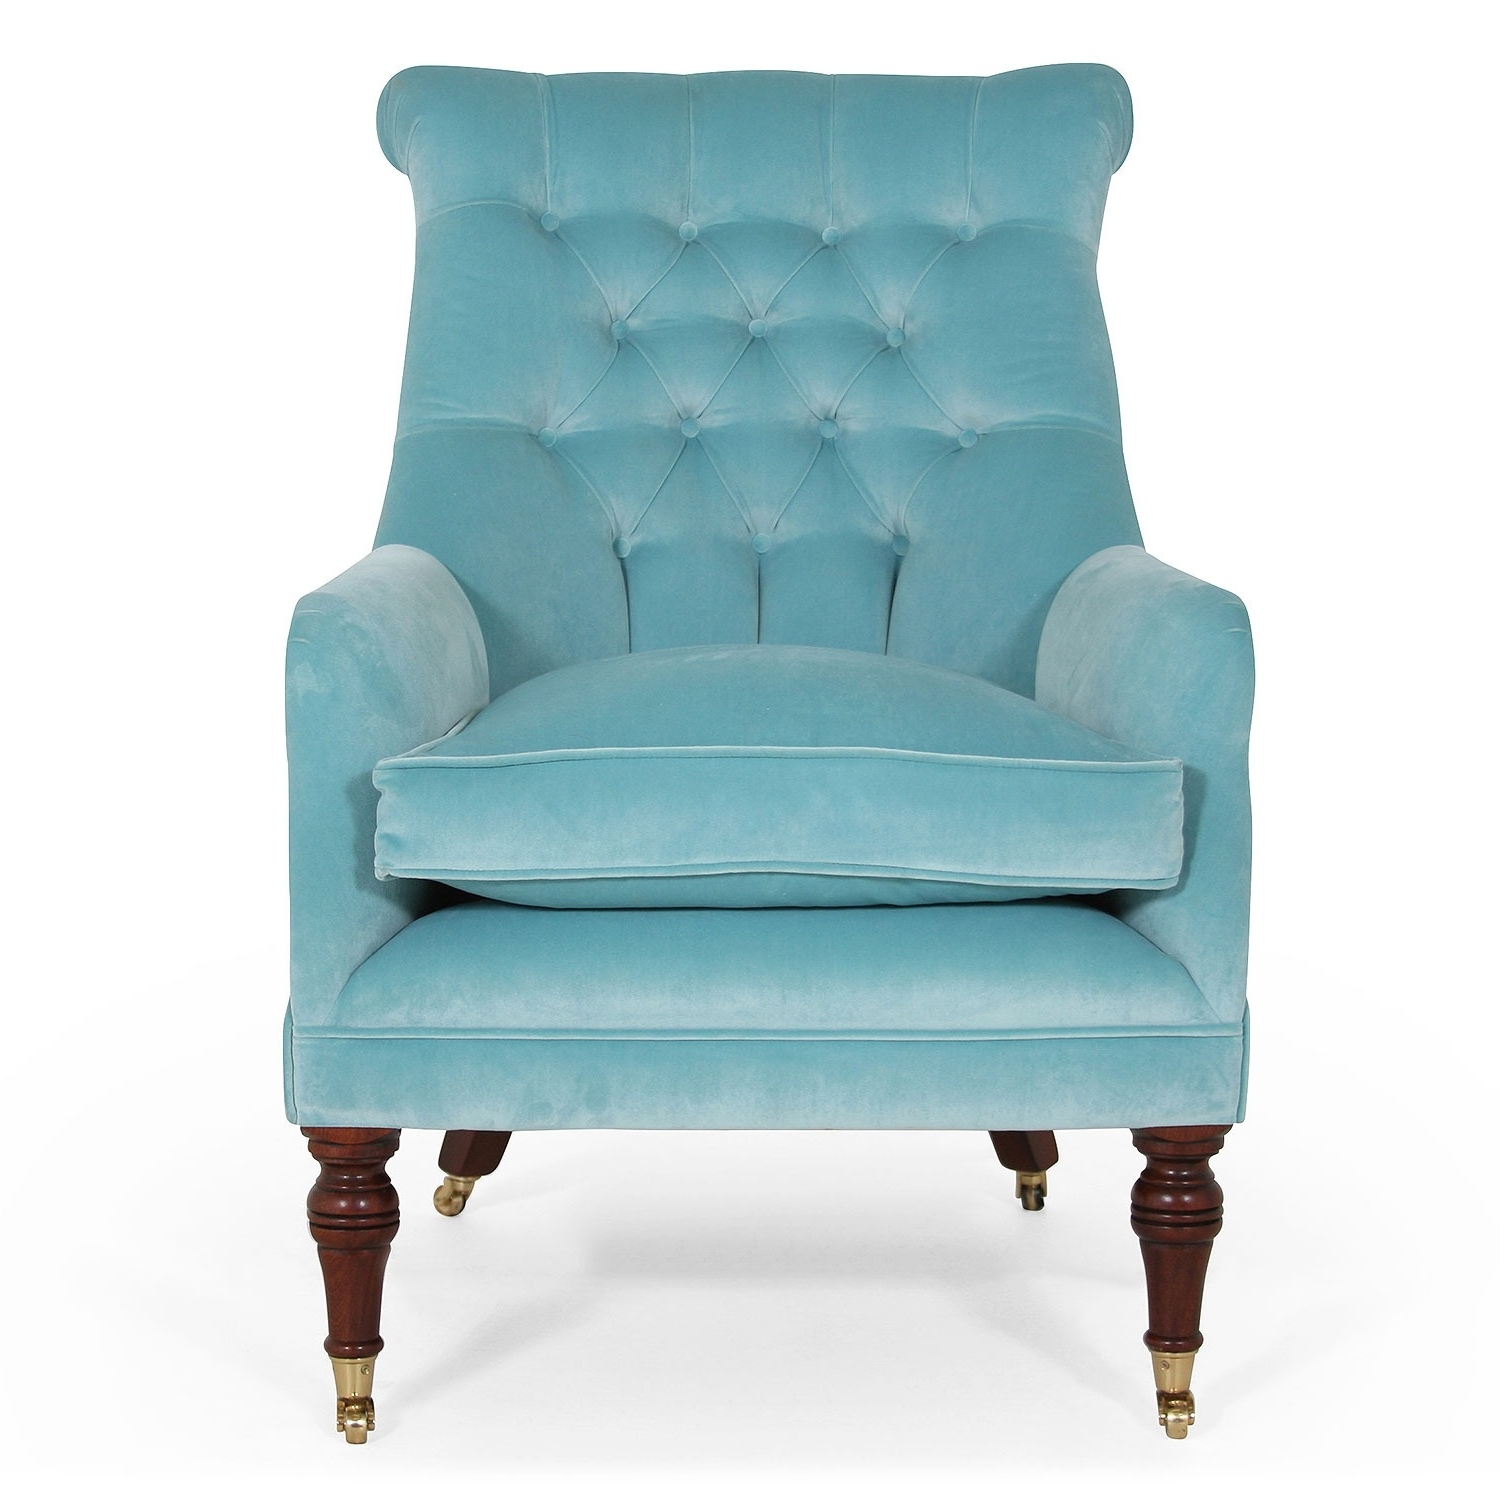 Well Liked Swift Bedroom Chair In Linwood Omega Fjord, Fabric Chairs In Stock Regarding Swift Side Chairs (View 19 of 20)